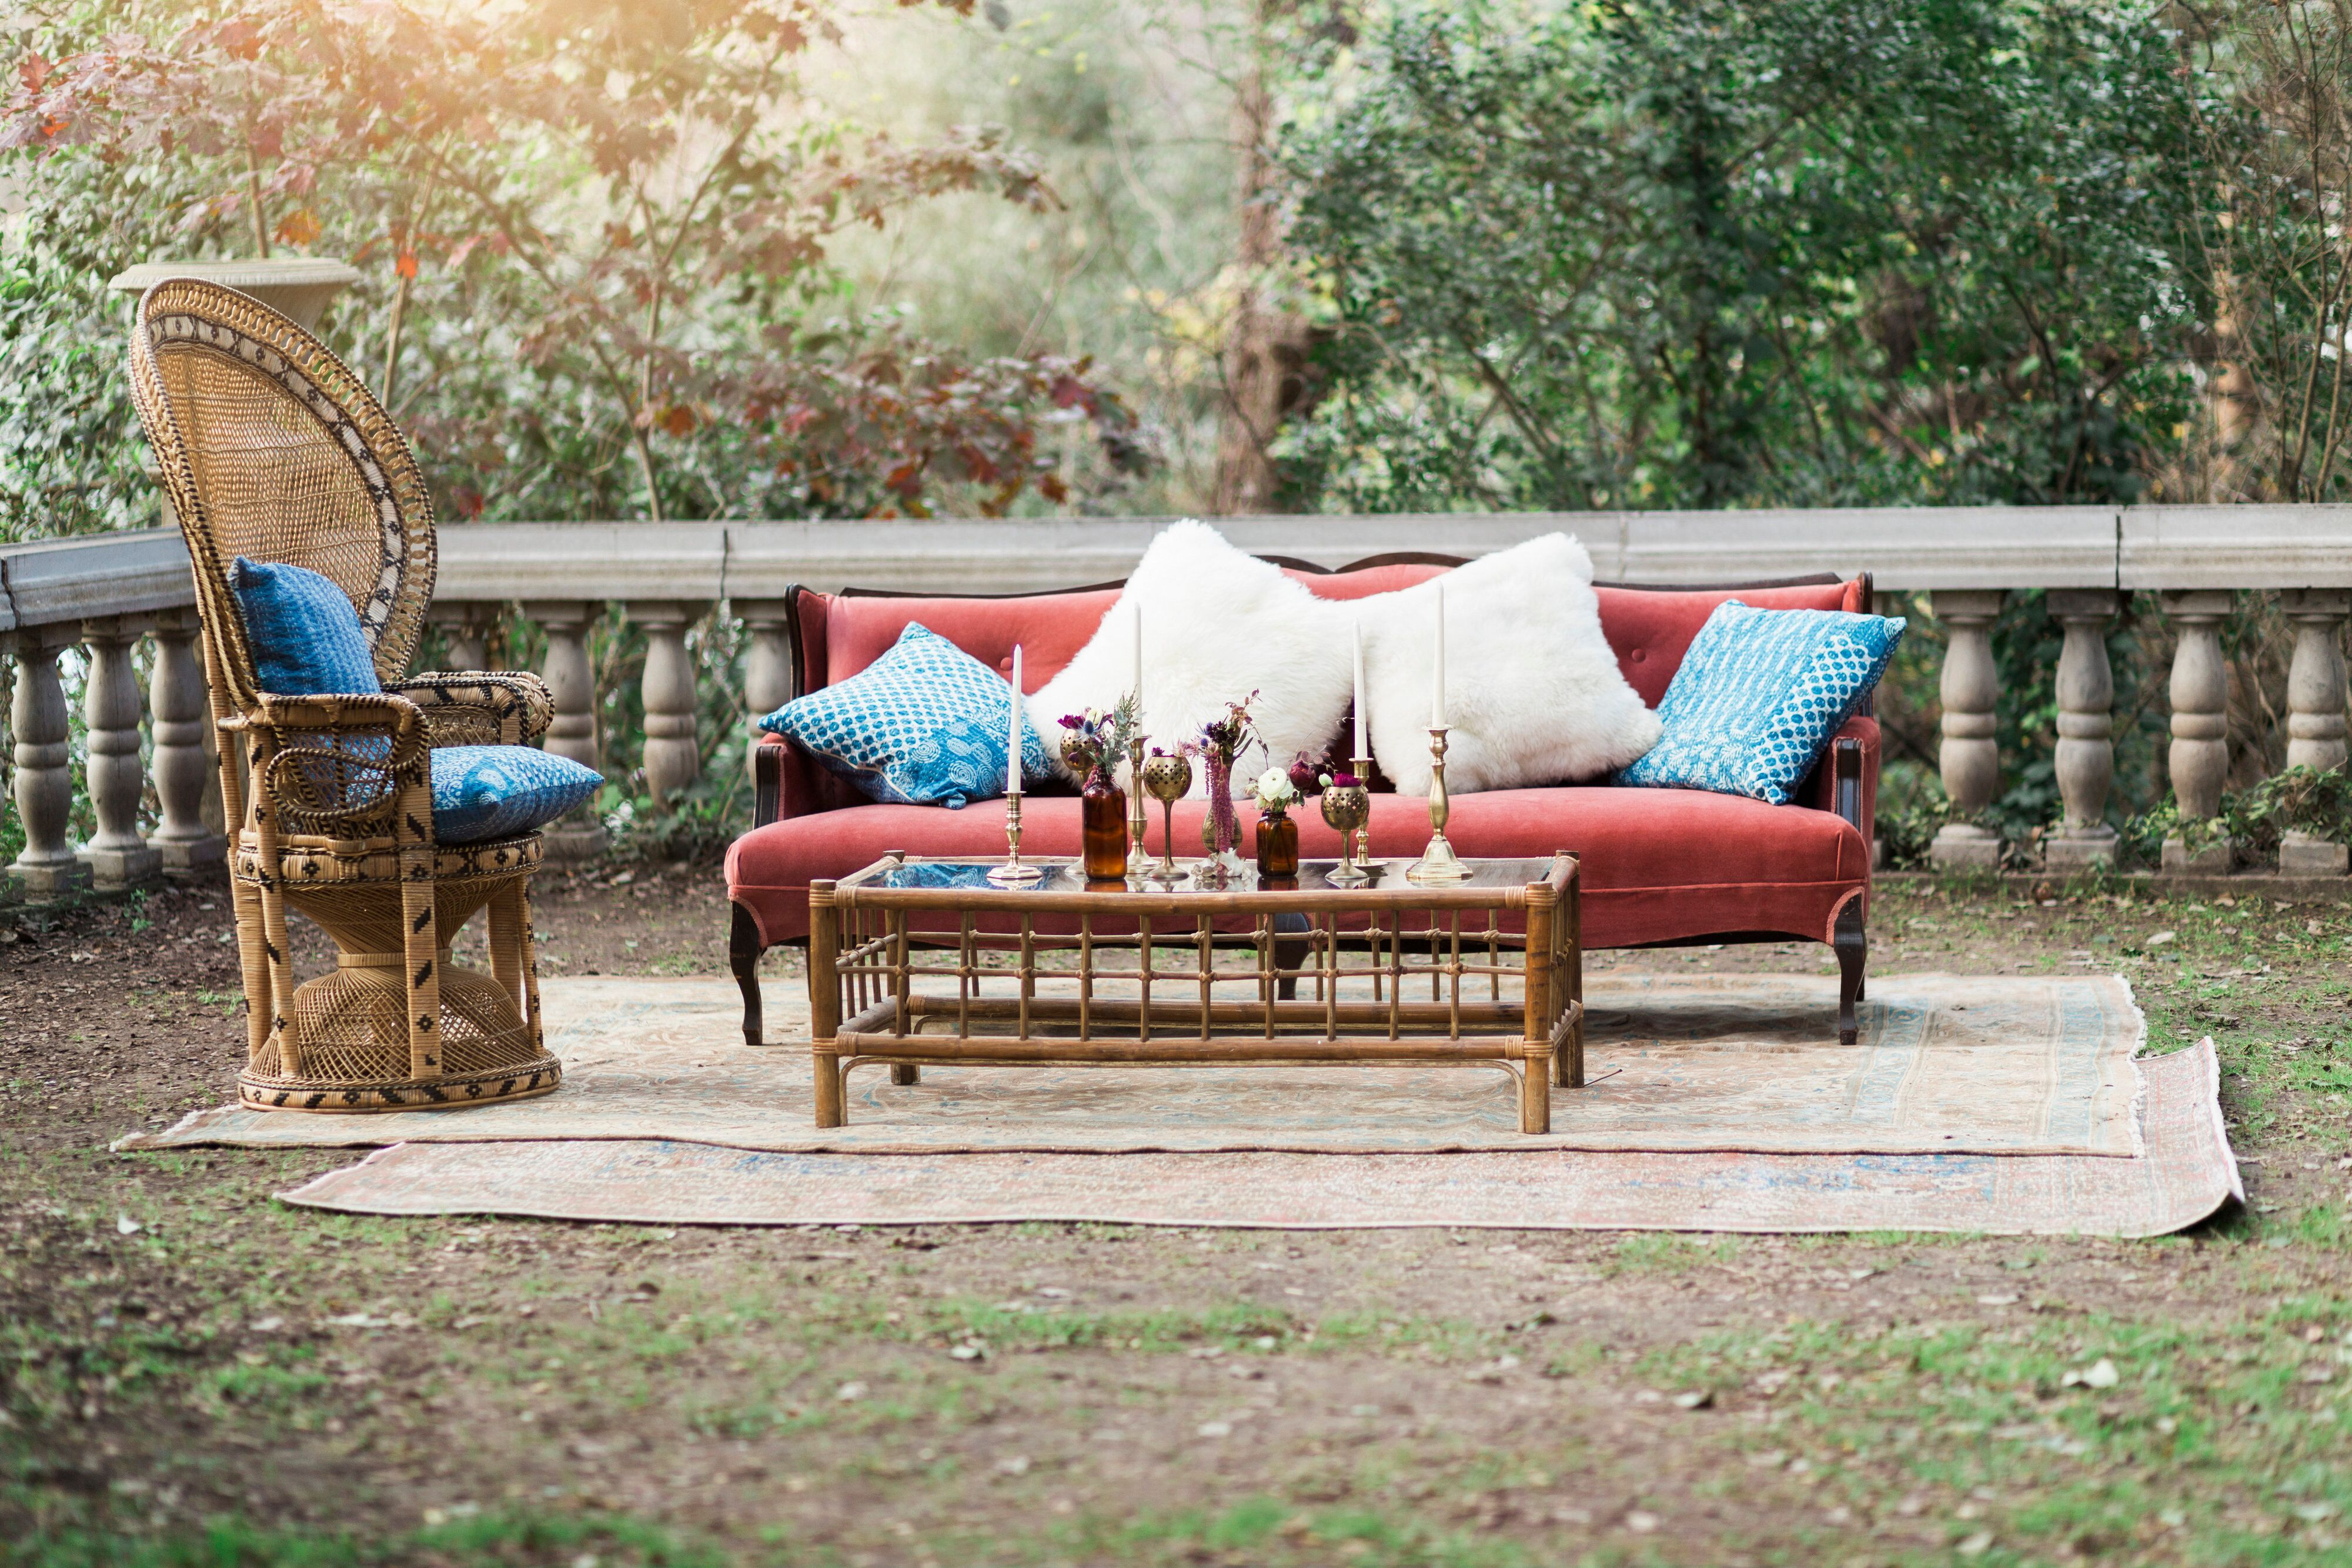 Bohemian Outdoor Bridal Lounge With Peacock Chair And Berry Pink Sofa.  Rentals By Birch U0026